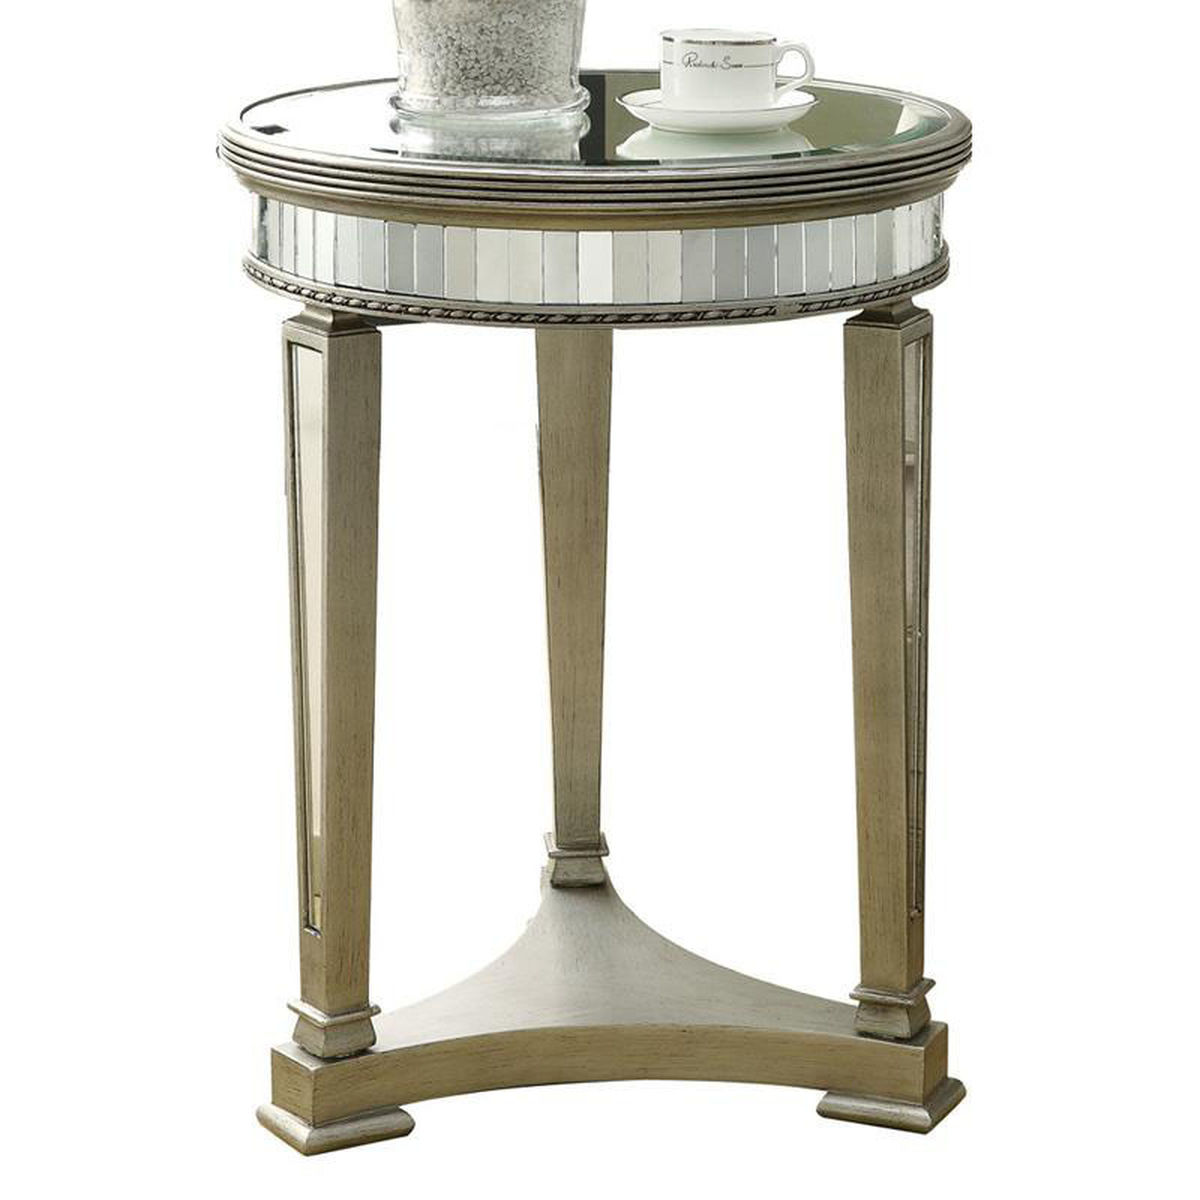 round silver accent table bizchair monarch specialties msp main our contemporary diameter with mirror finish brushed chairs under garden tablecloths and placemats wooden frog